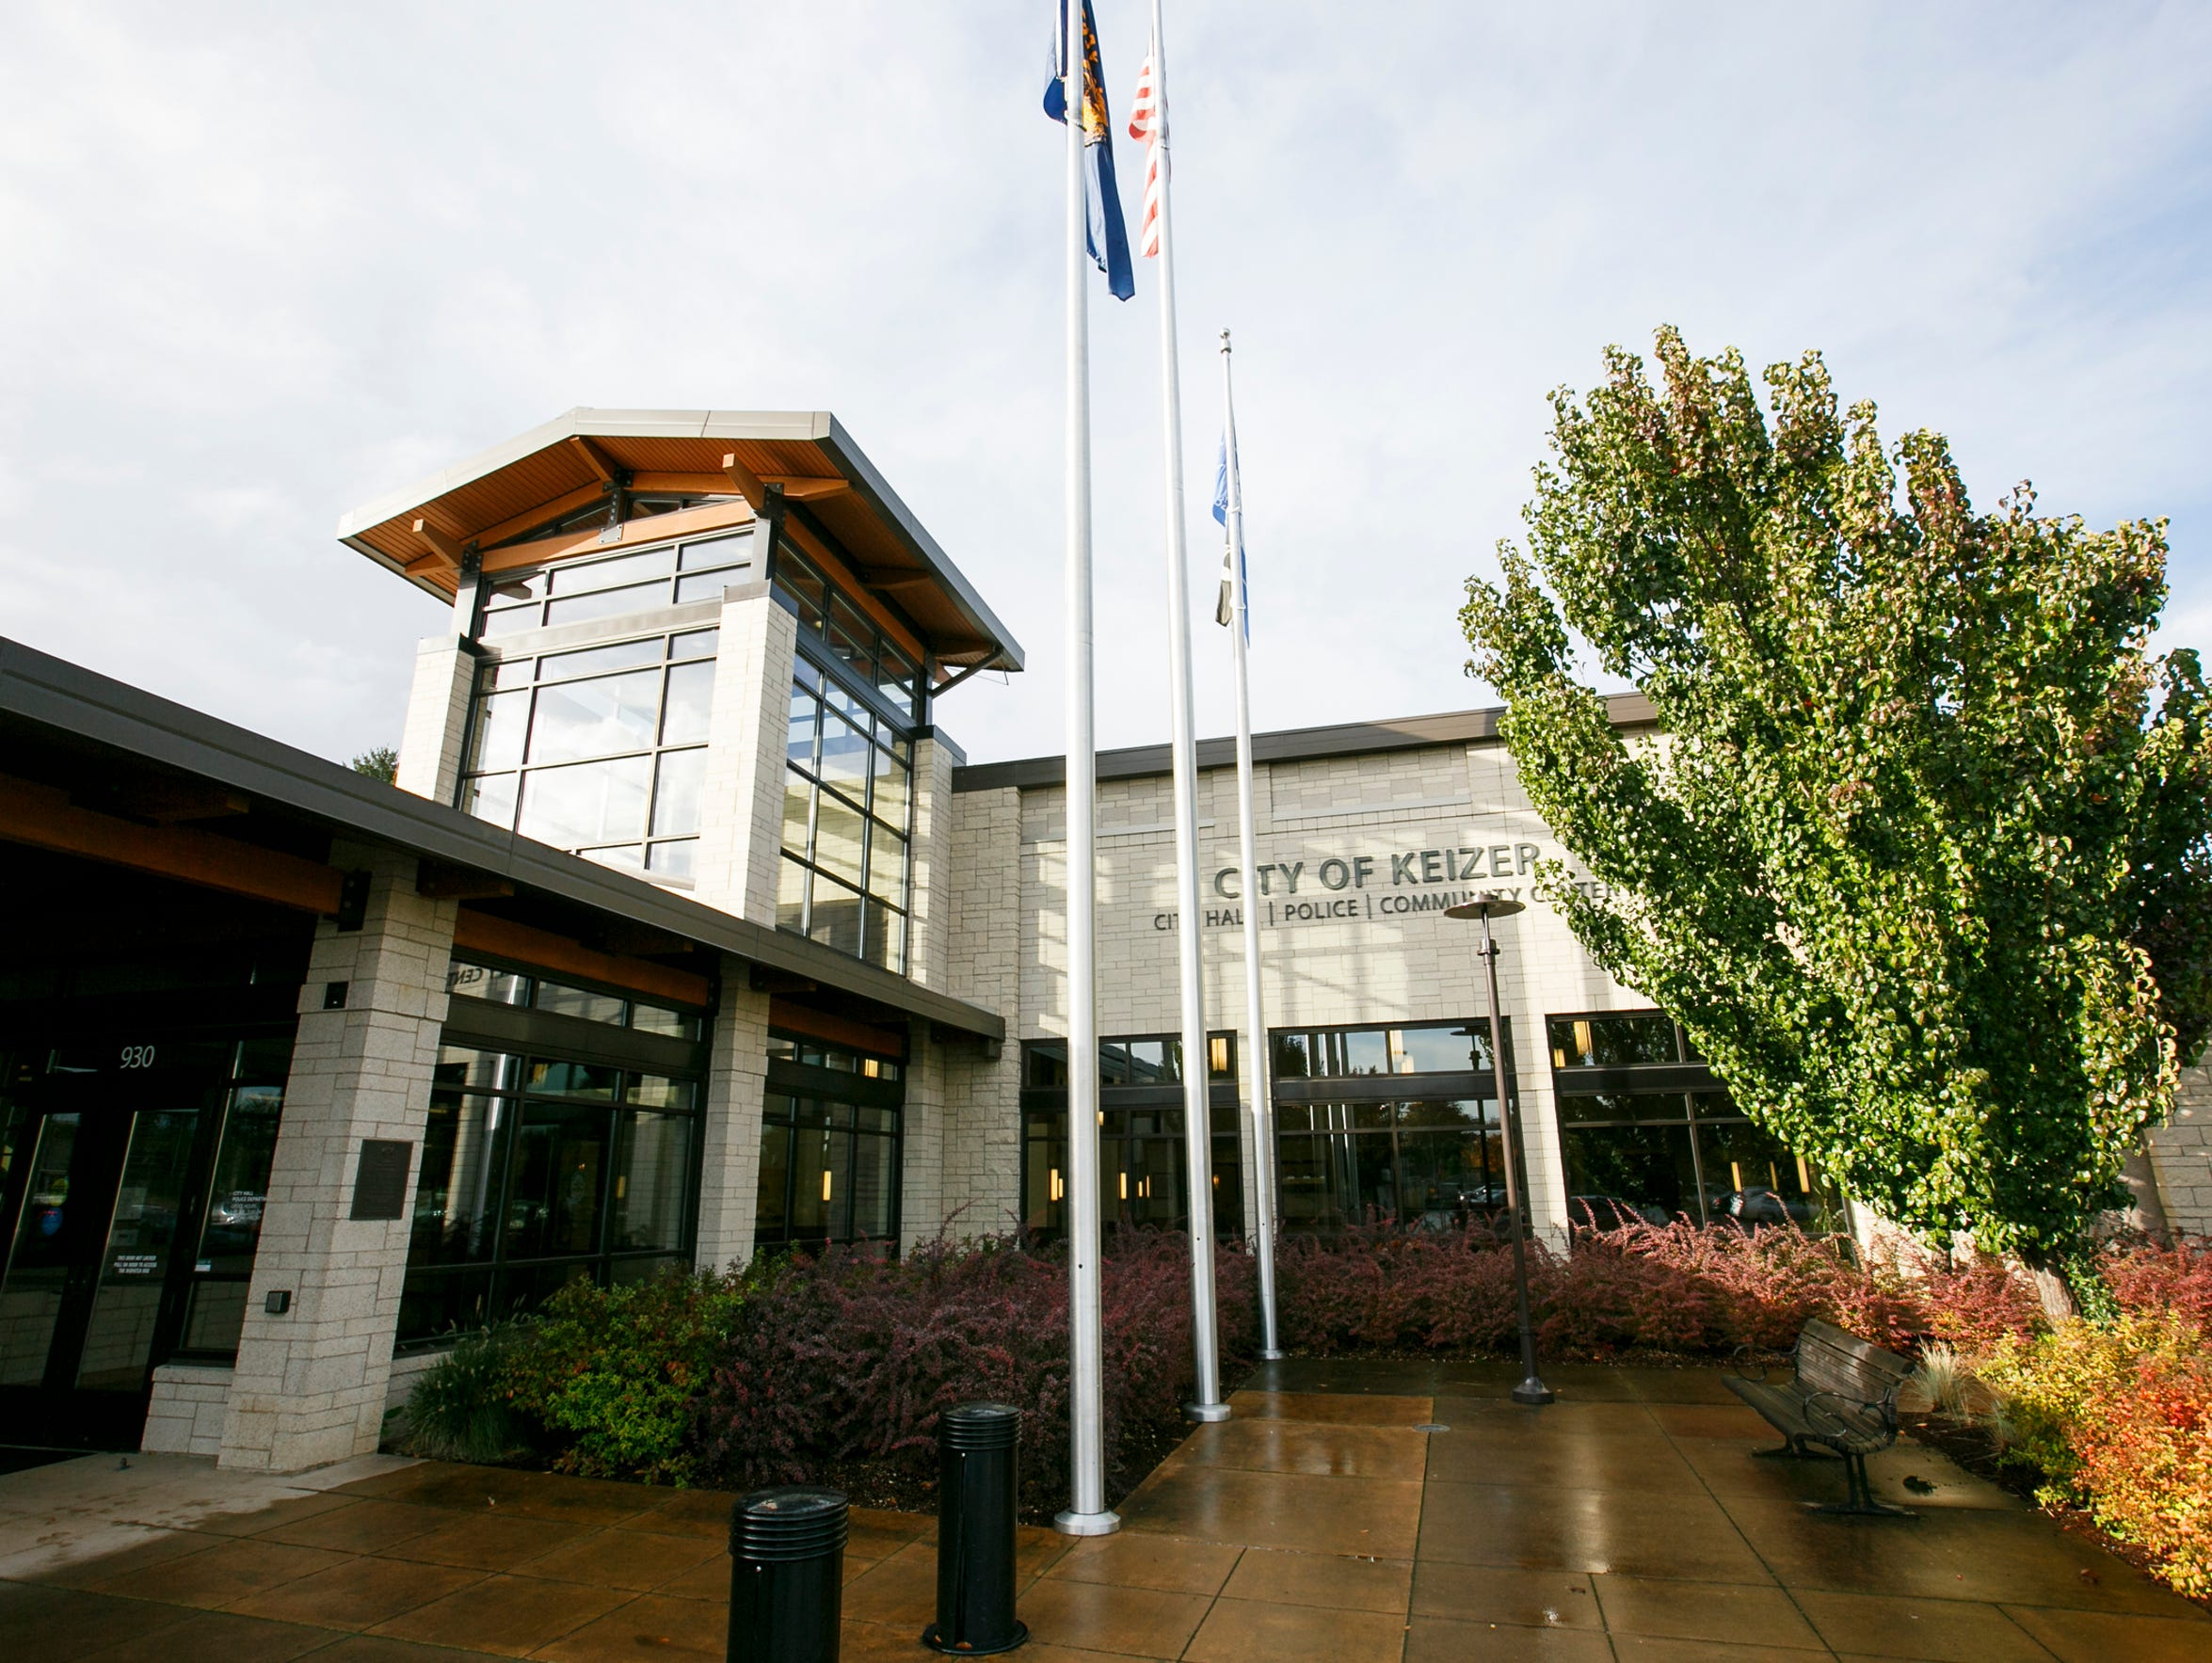 The entrance to the Keizer Civic Center, which houses